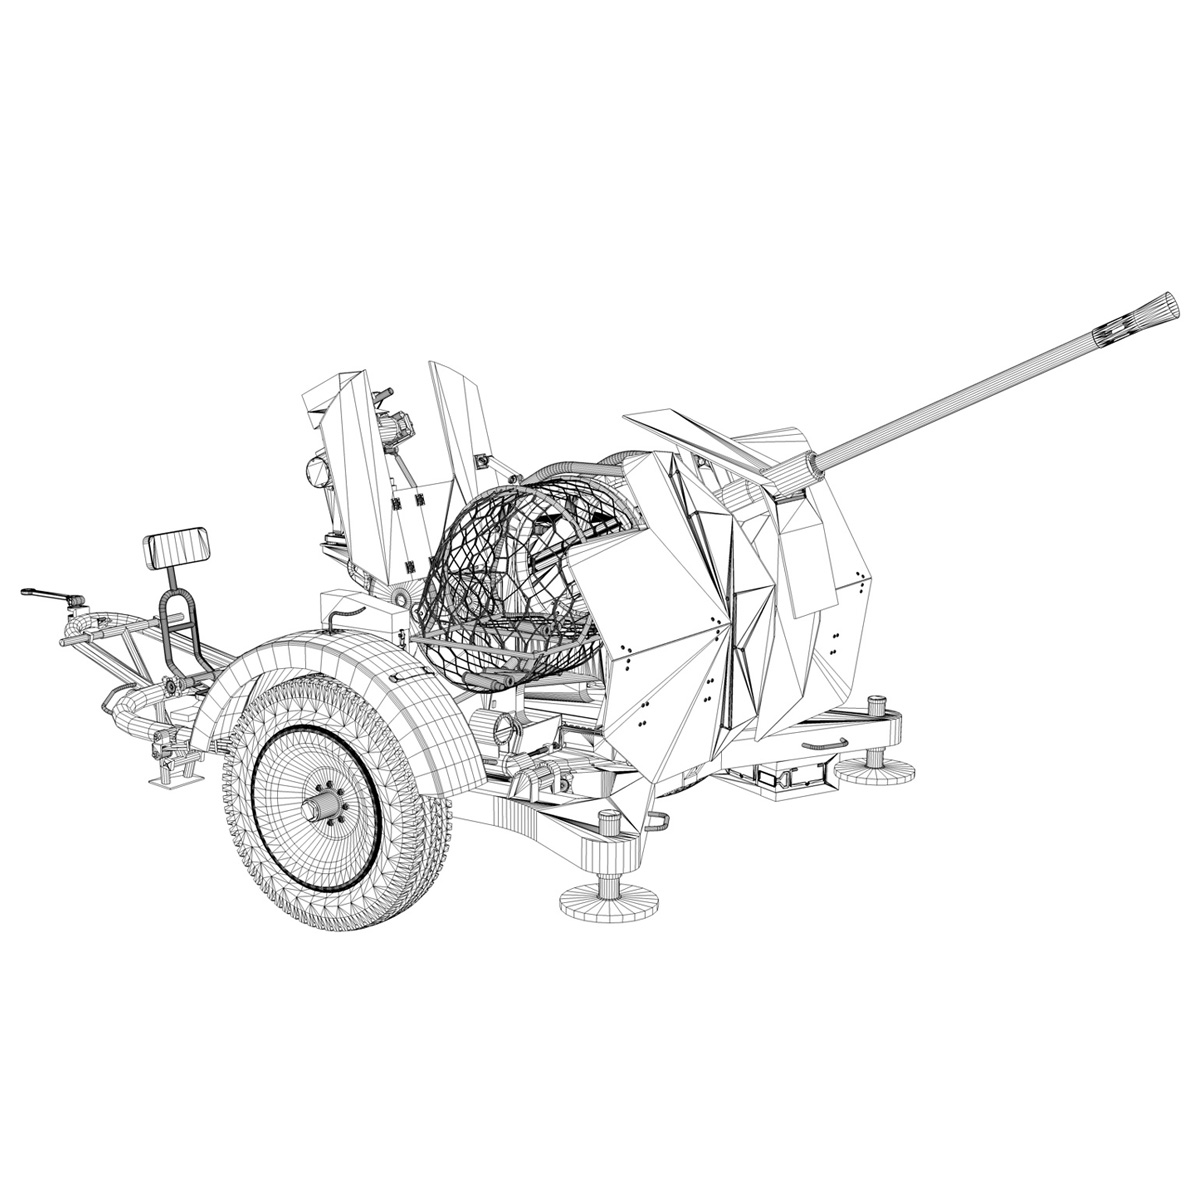 2cm flak 38 with sd.ah 51 – trailer – dhg 3d model 3ds fbx c4d lwo obj 269003